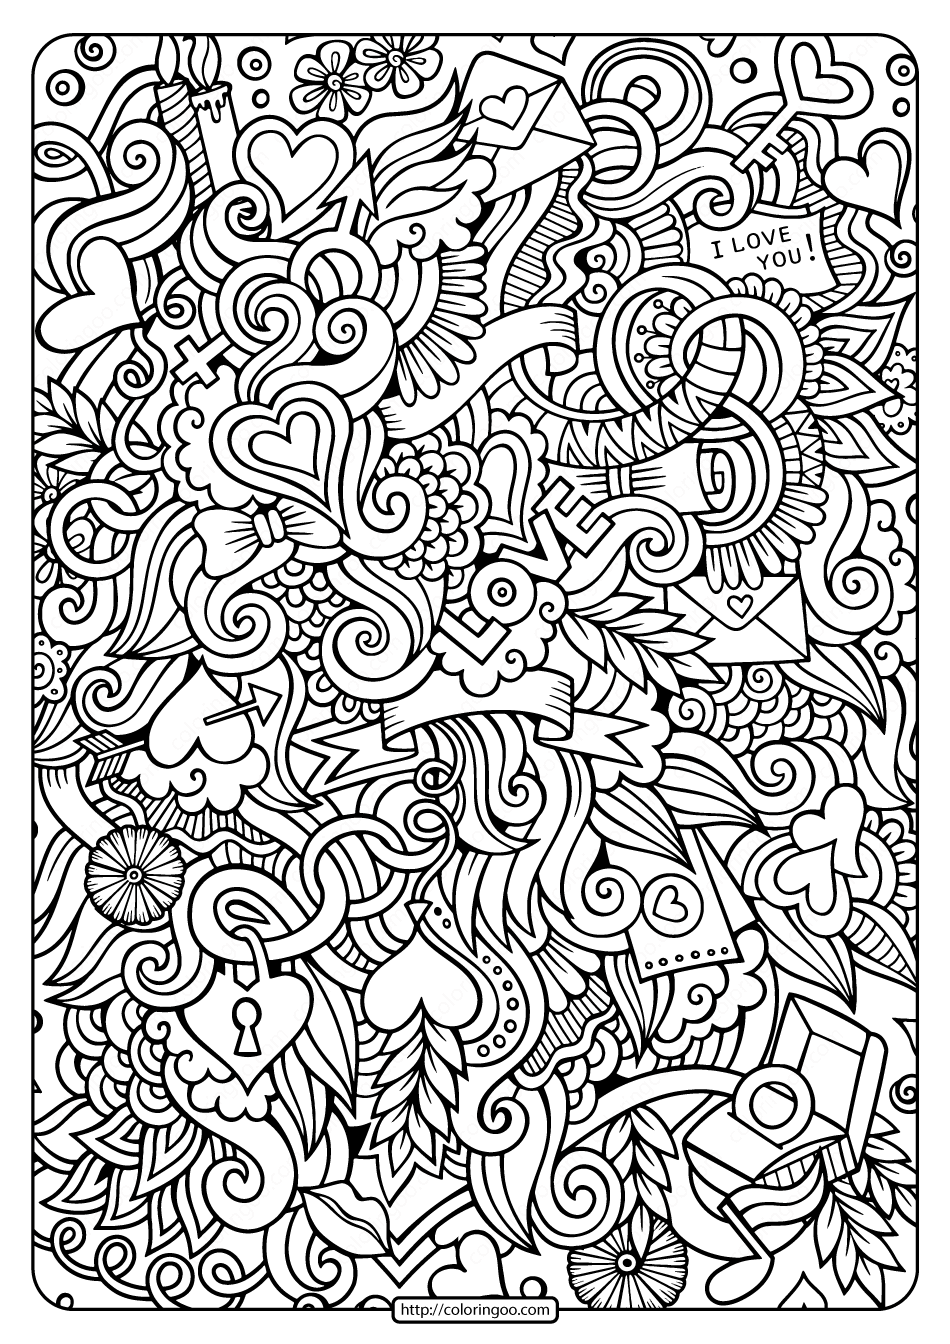 love coloring sheet free printable love doodle pdf coloring page love sheet coloring